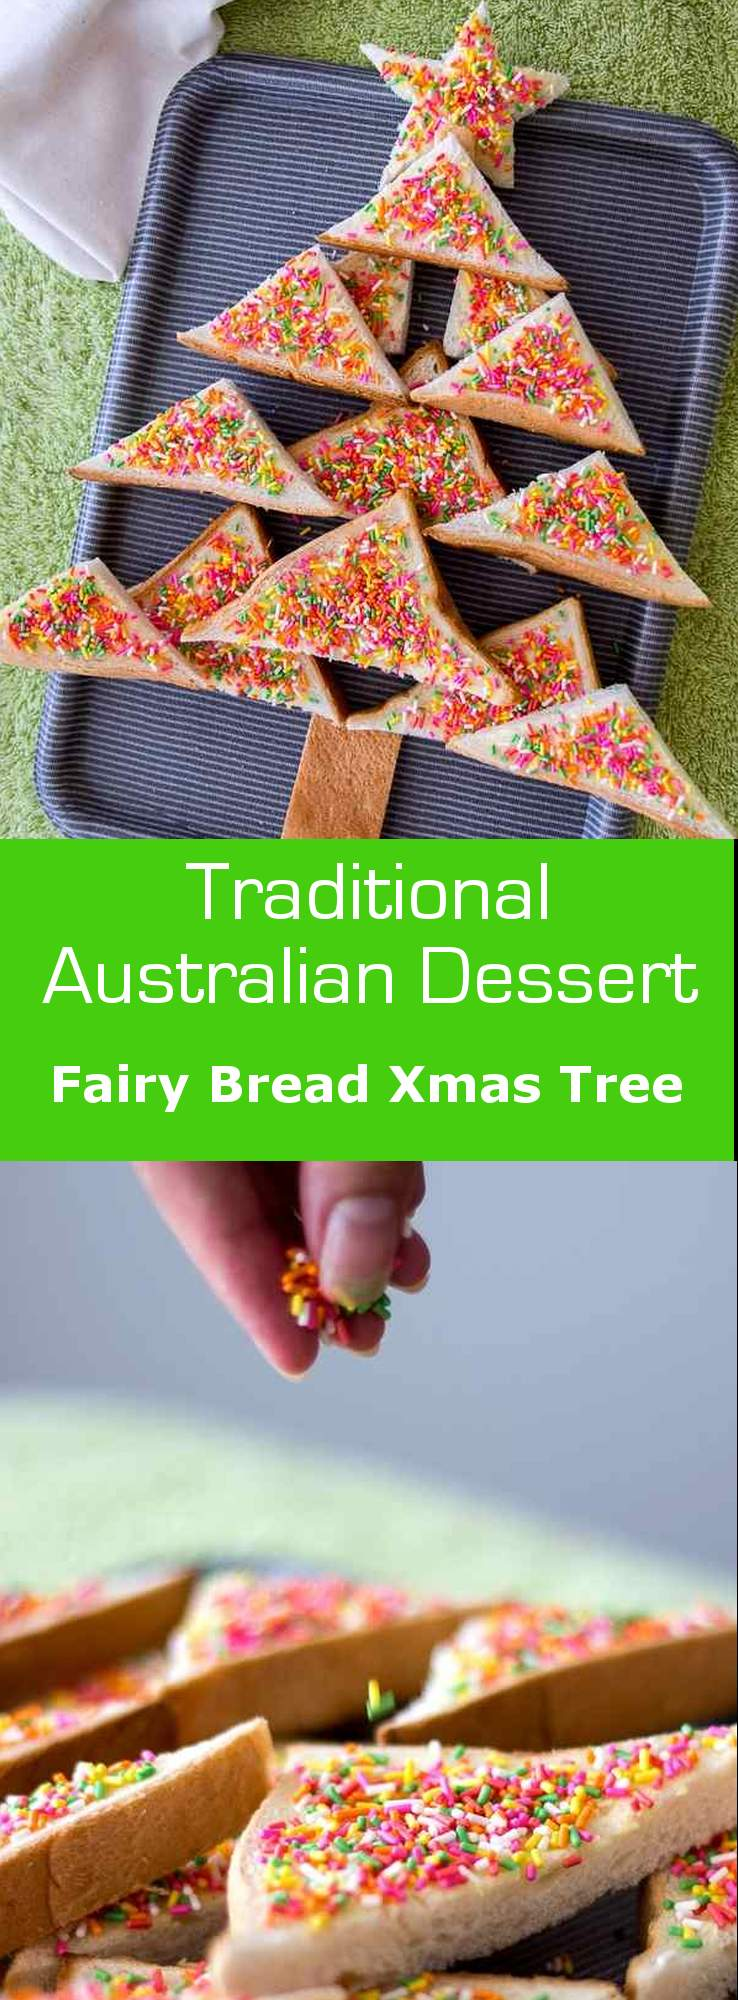 Fairy bread Christmas tree is Australia's favorite Christmas snack for kids and nostalgic adults alike. #christmas #dessert #Australia